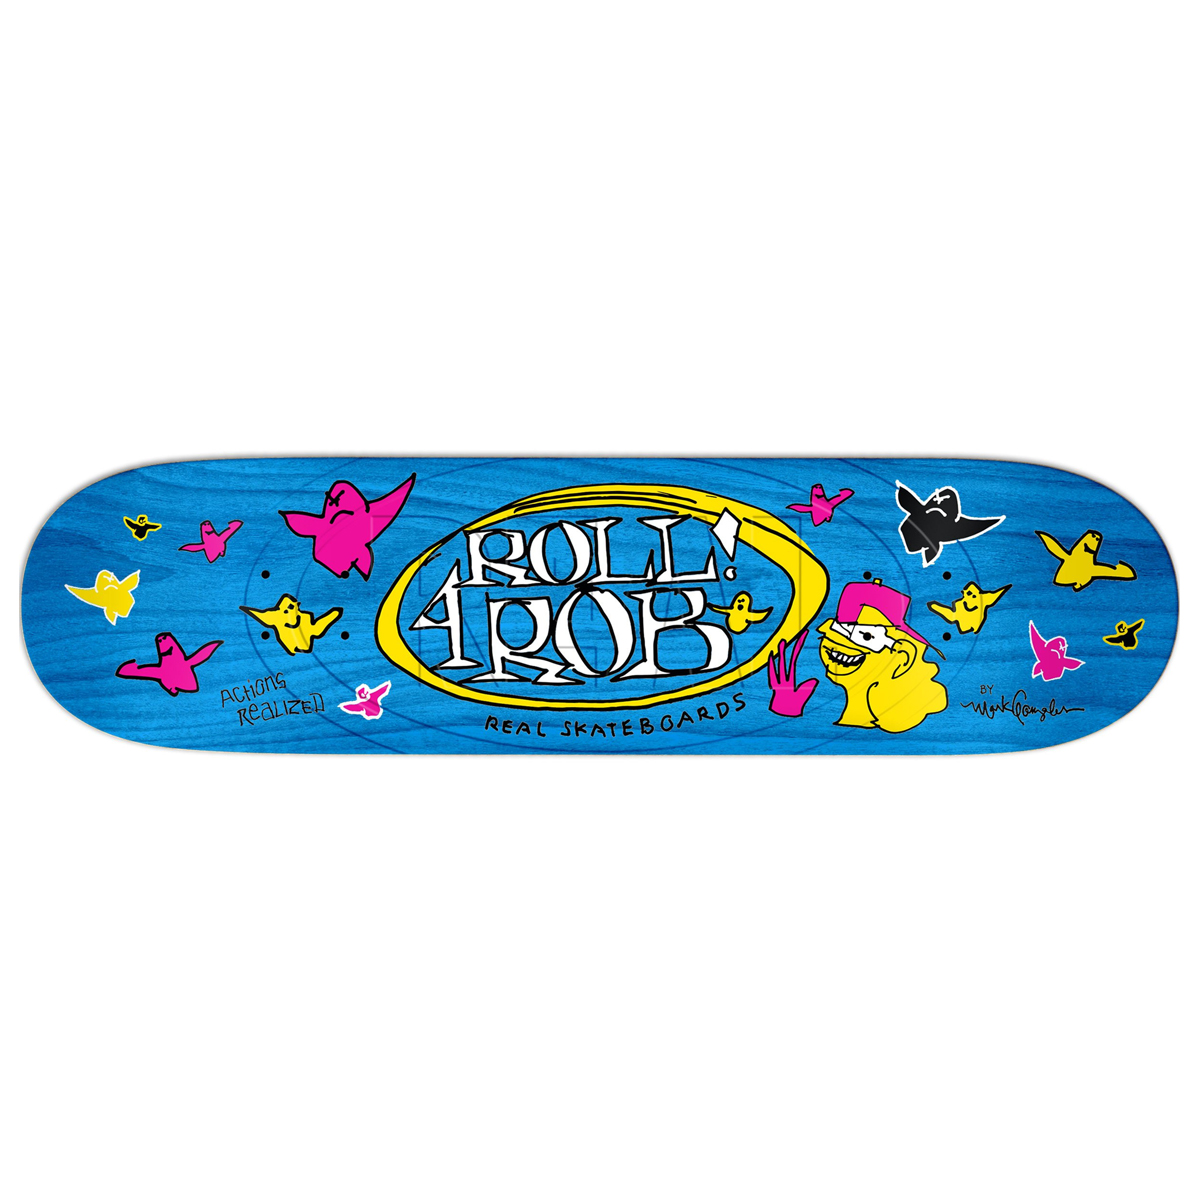 RL DECK ROLL 4 ROB GONZ II 8.5 - Click to enlarge